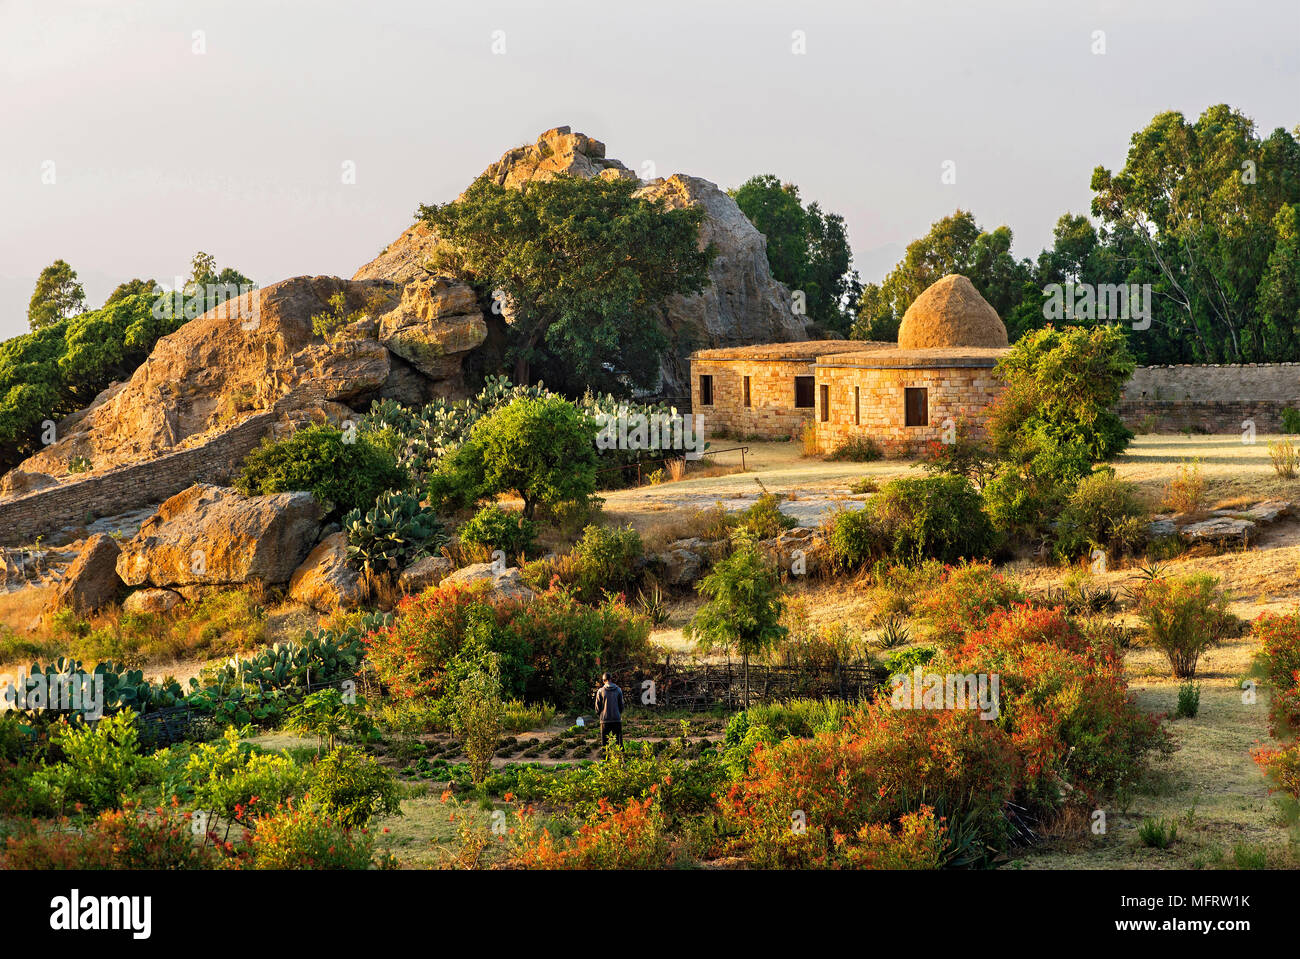 Guest accommodation, Gheralta-Lodge, Hawzien, Tigray, Ethiopia - Stock Image